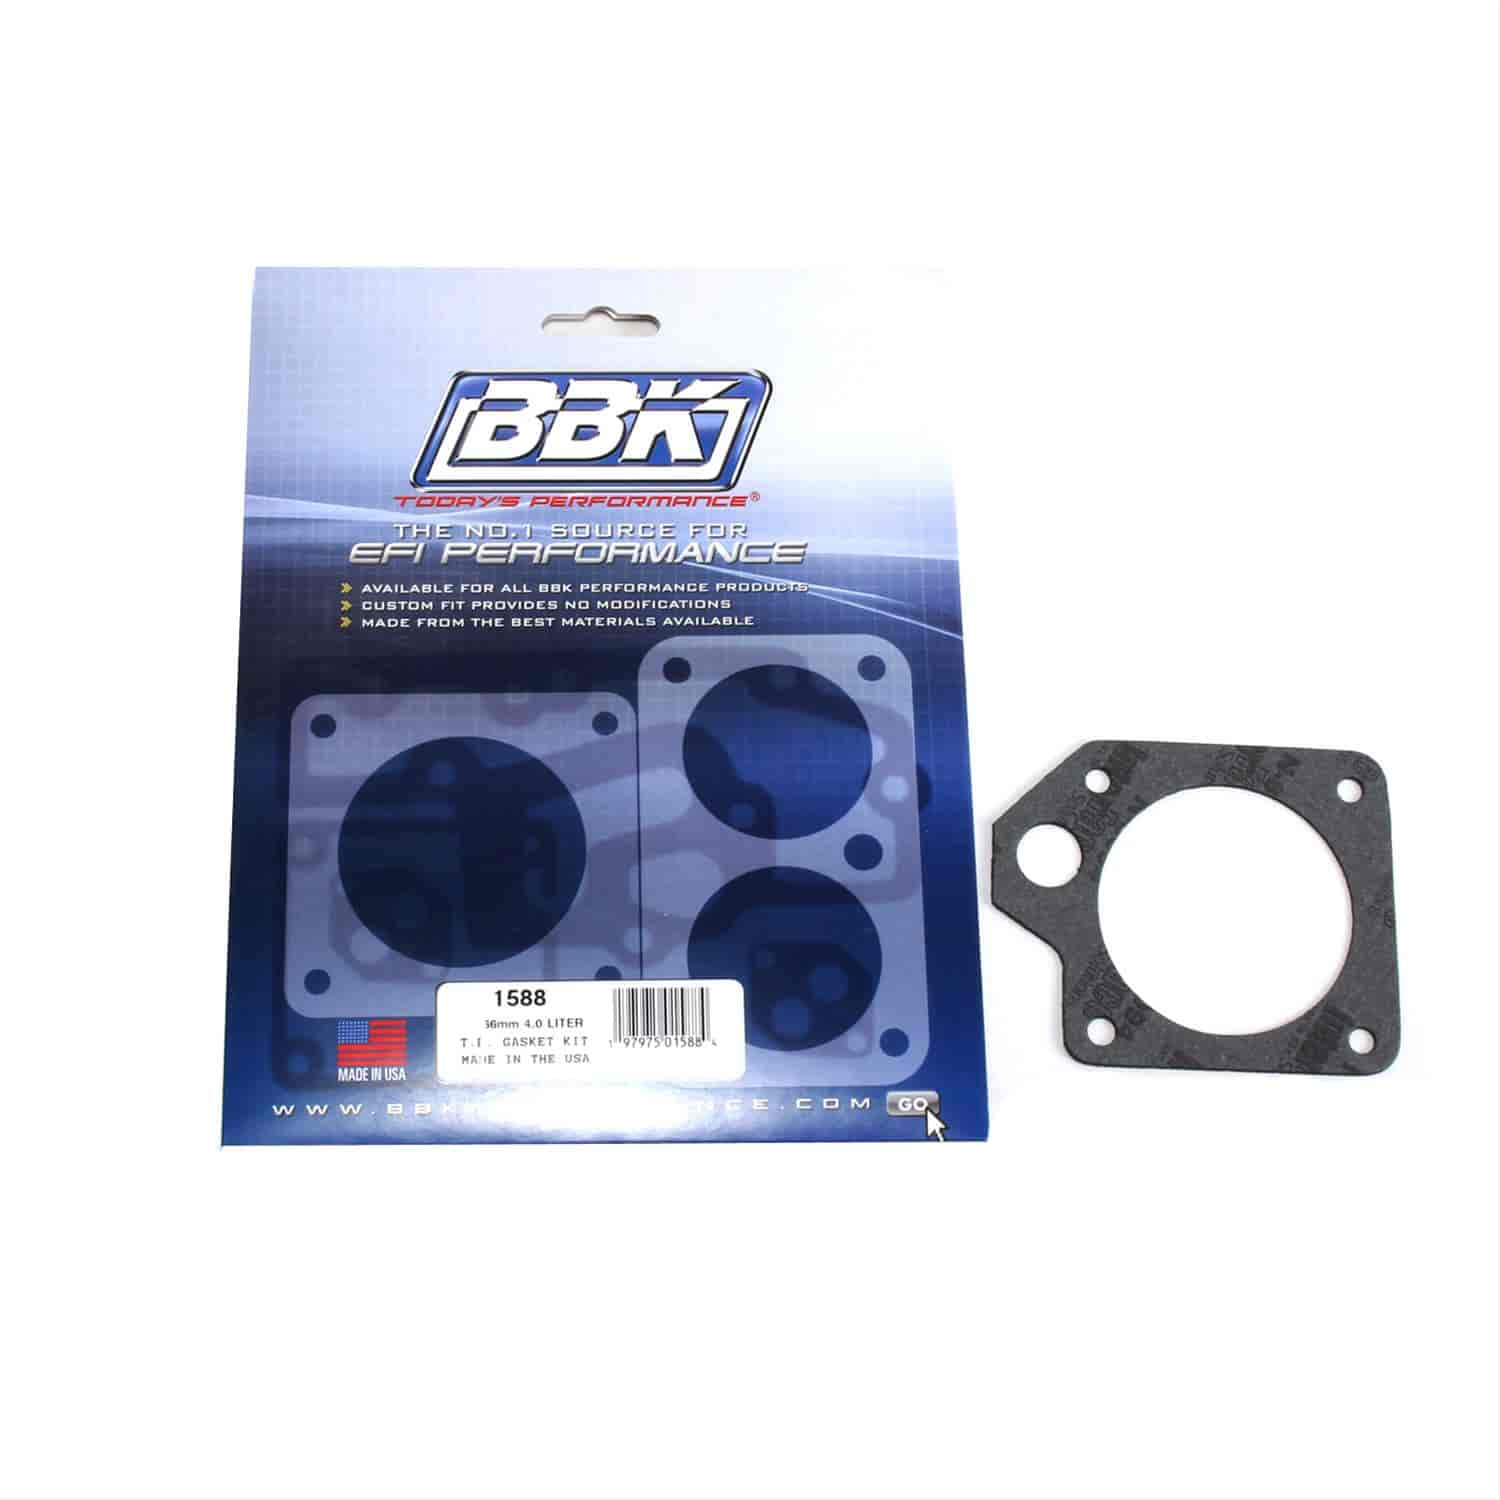 BBK Performance Products 1588 - BBK Throttle Body Gaskets